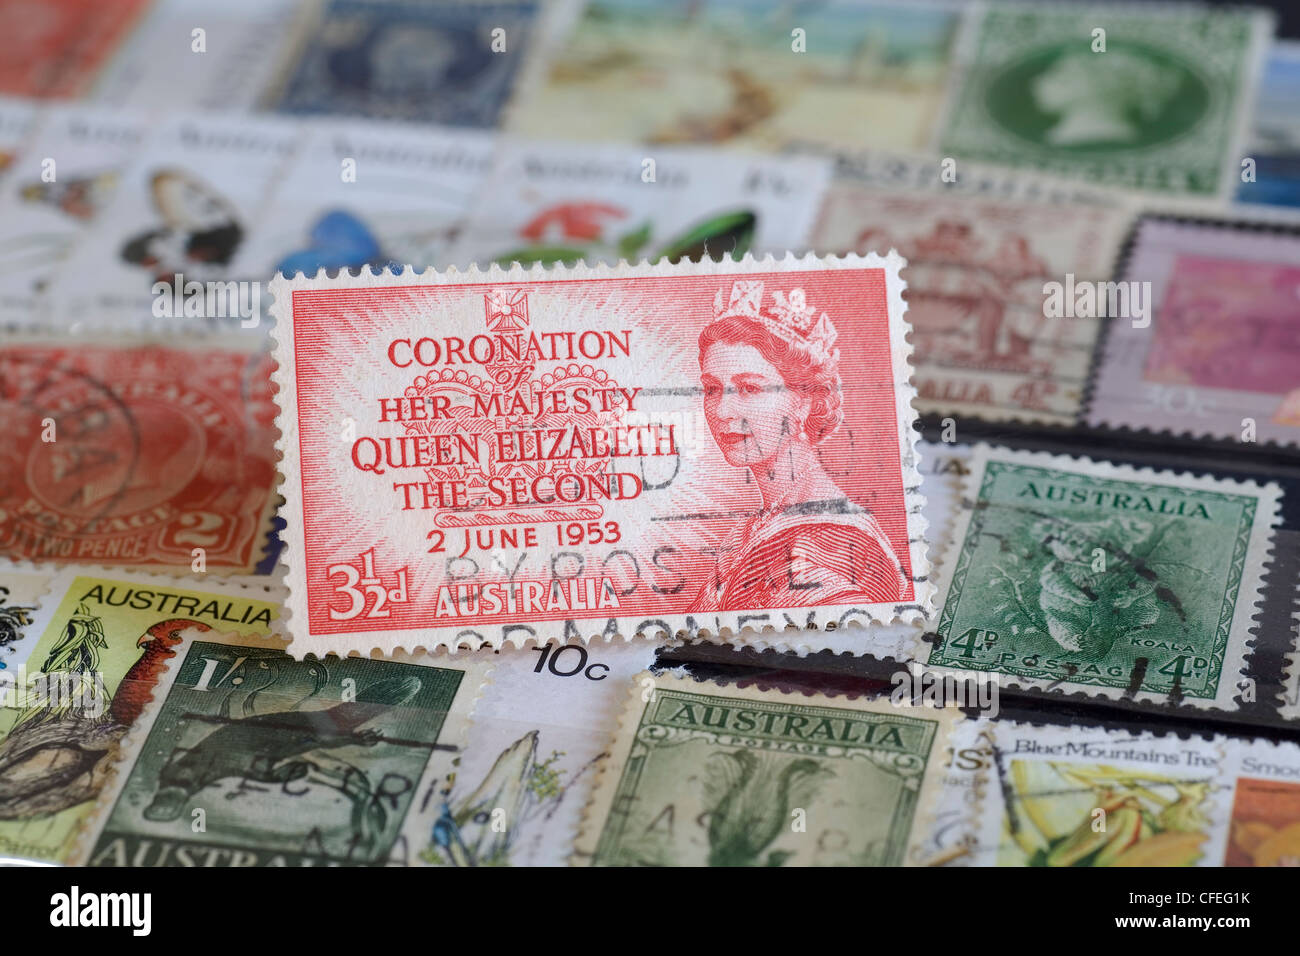 Australian postage stamp commemorating the June 2nd, 1953 Coronation of Her Majesty, Queen Elizabeth The Second. - Stock Image